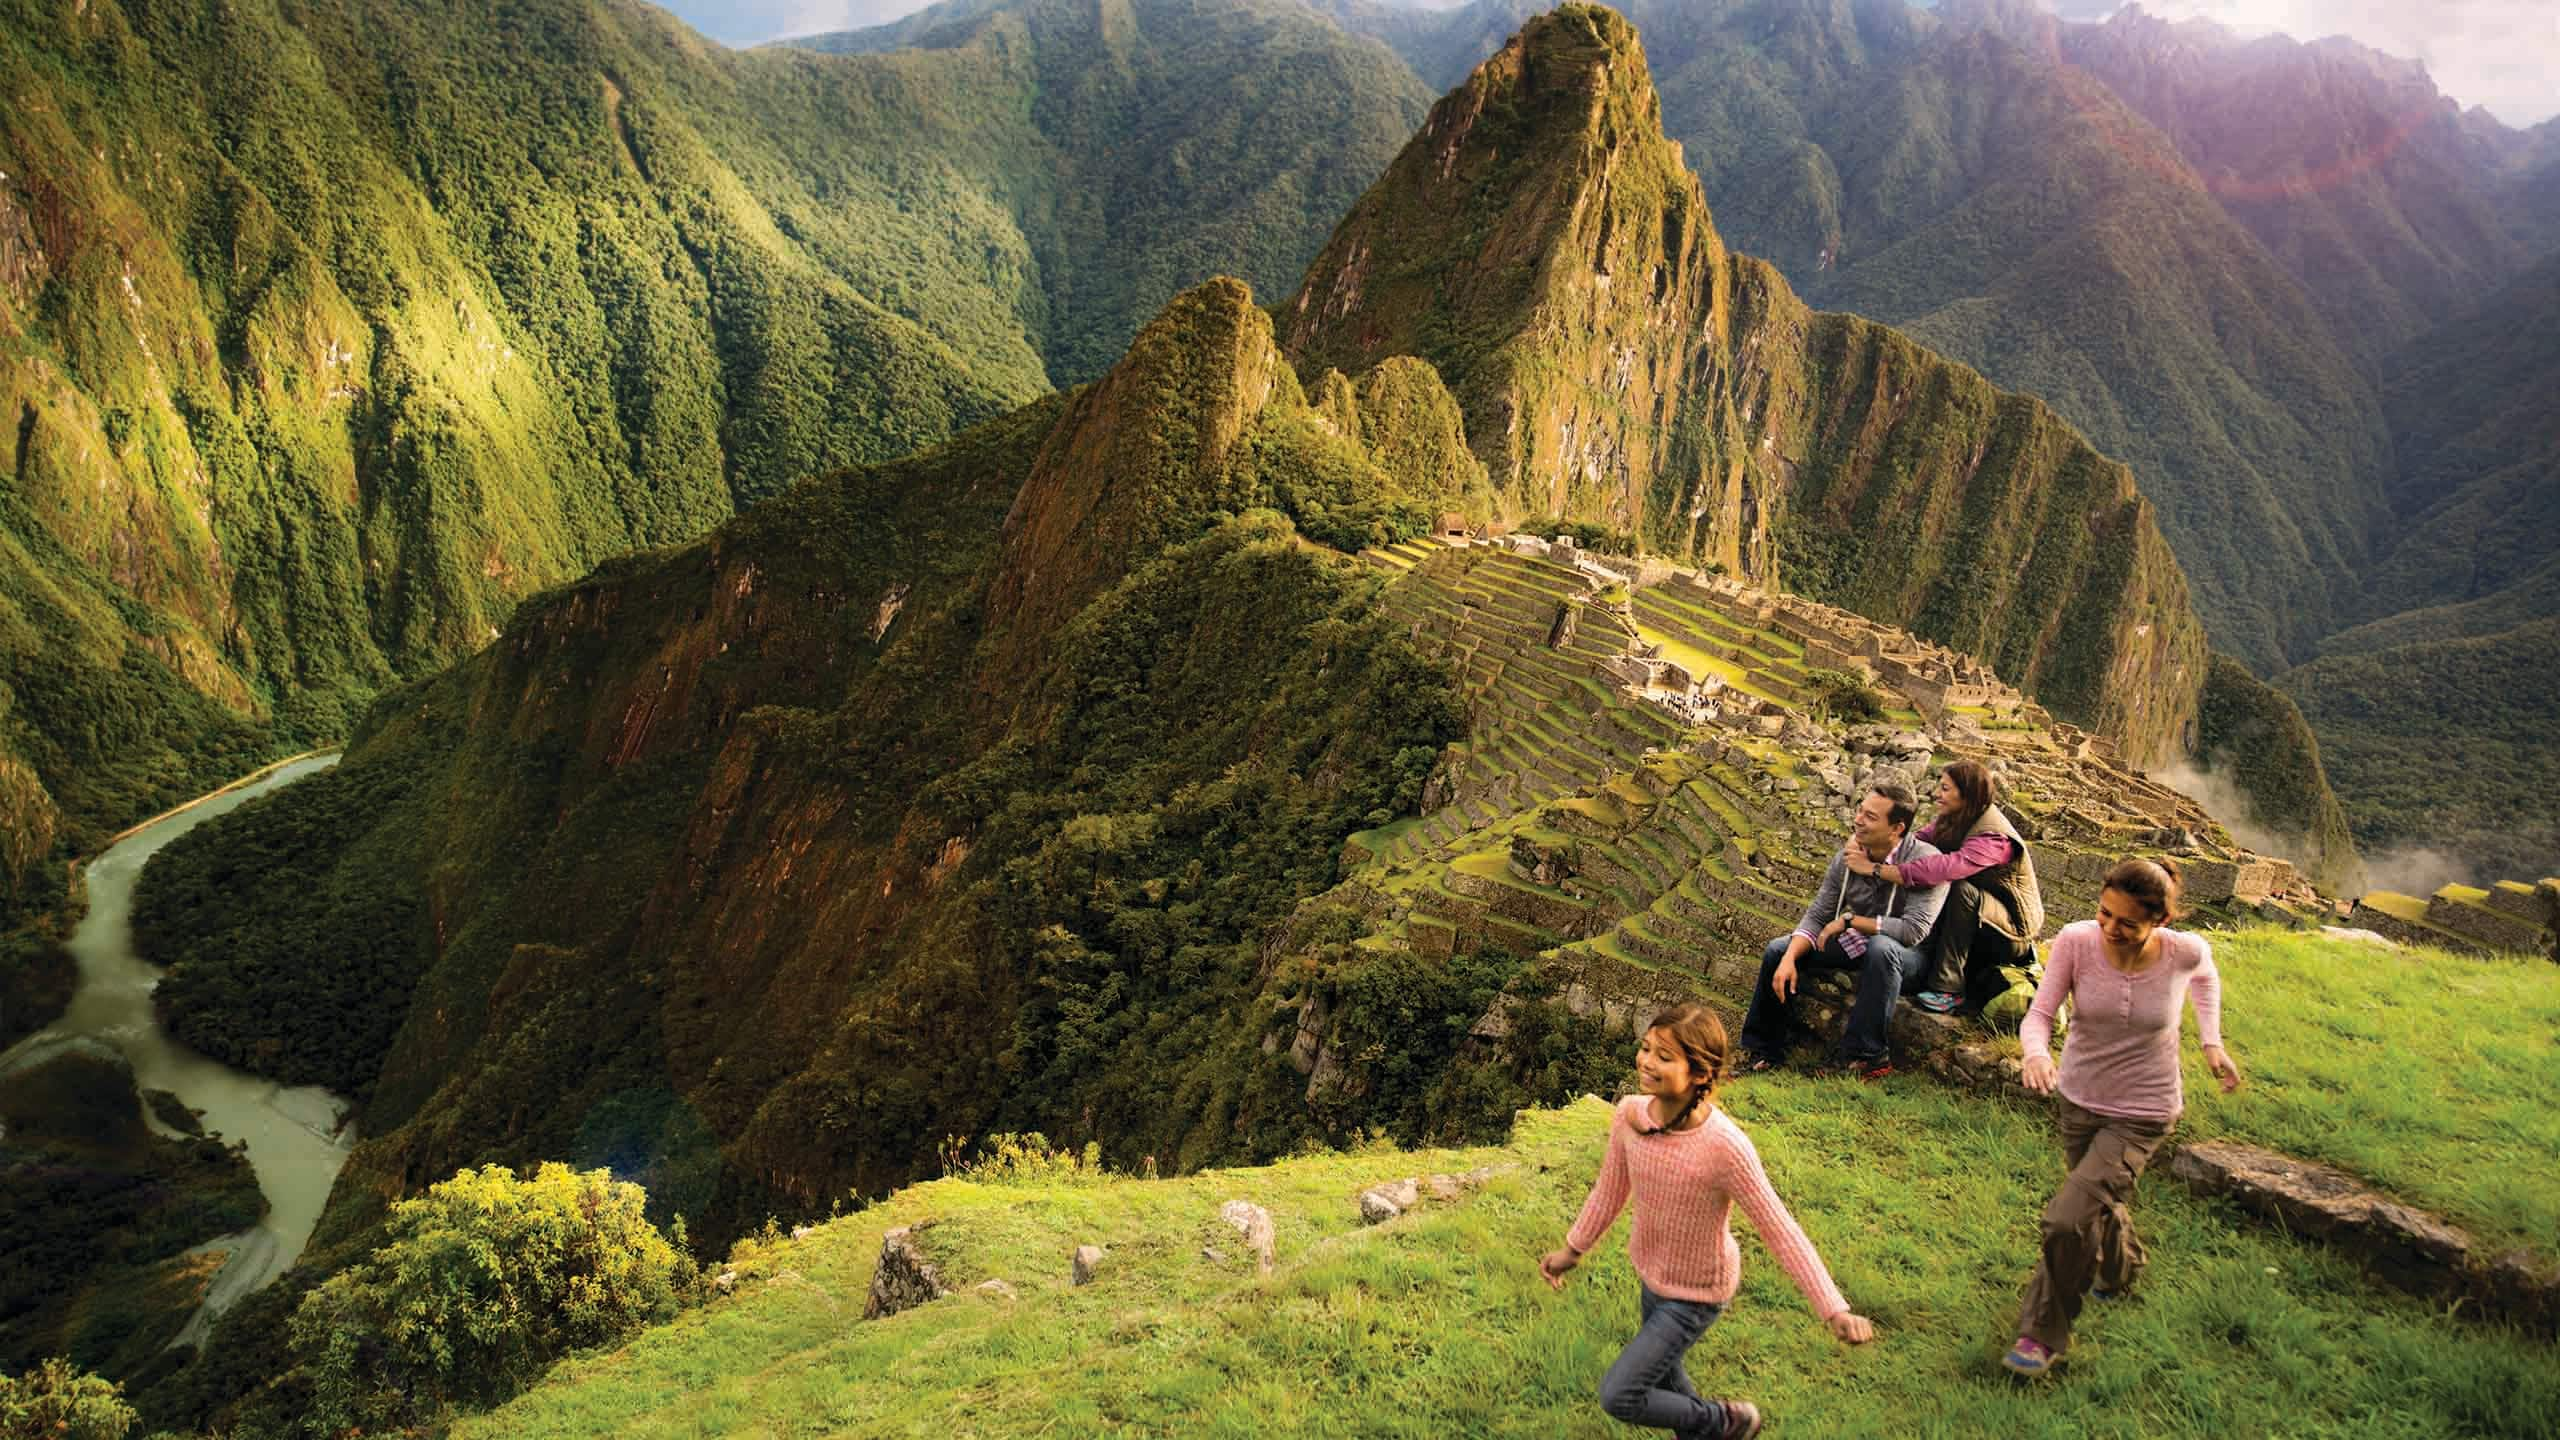 A family of 4 hiking in the mountains of Peru by Machu Picchu